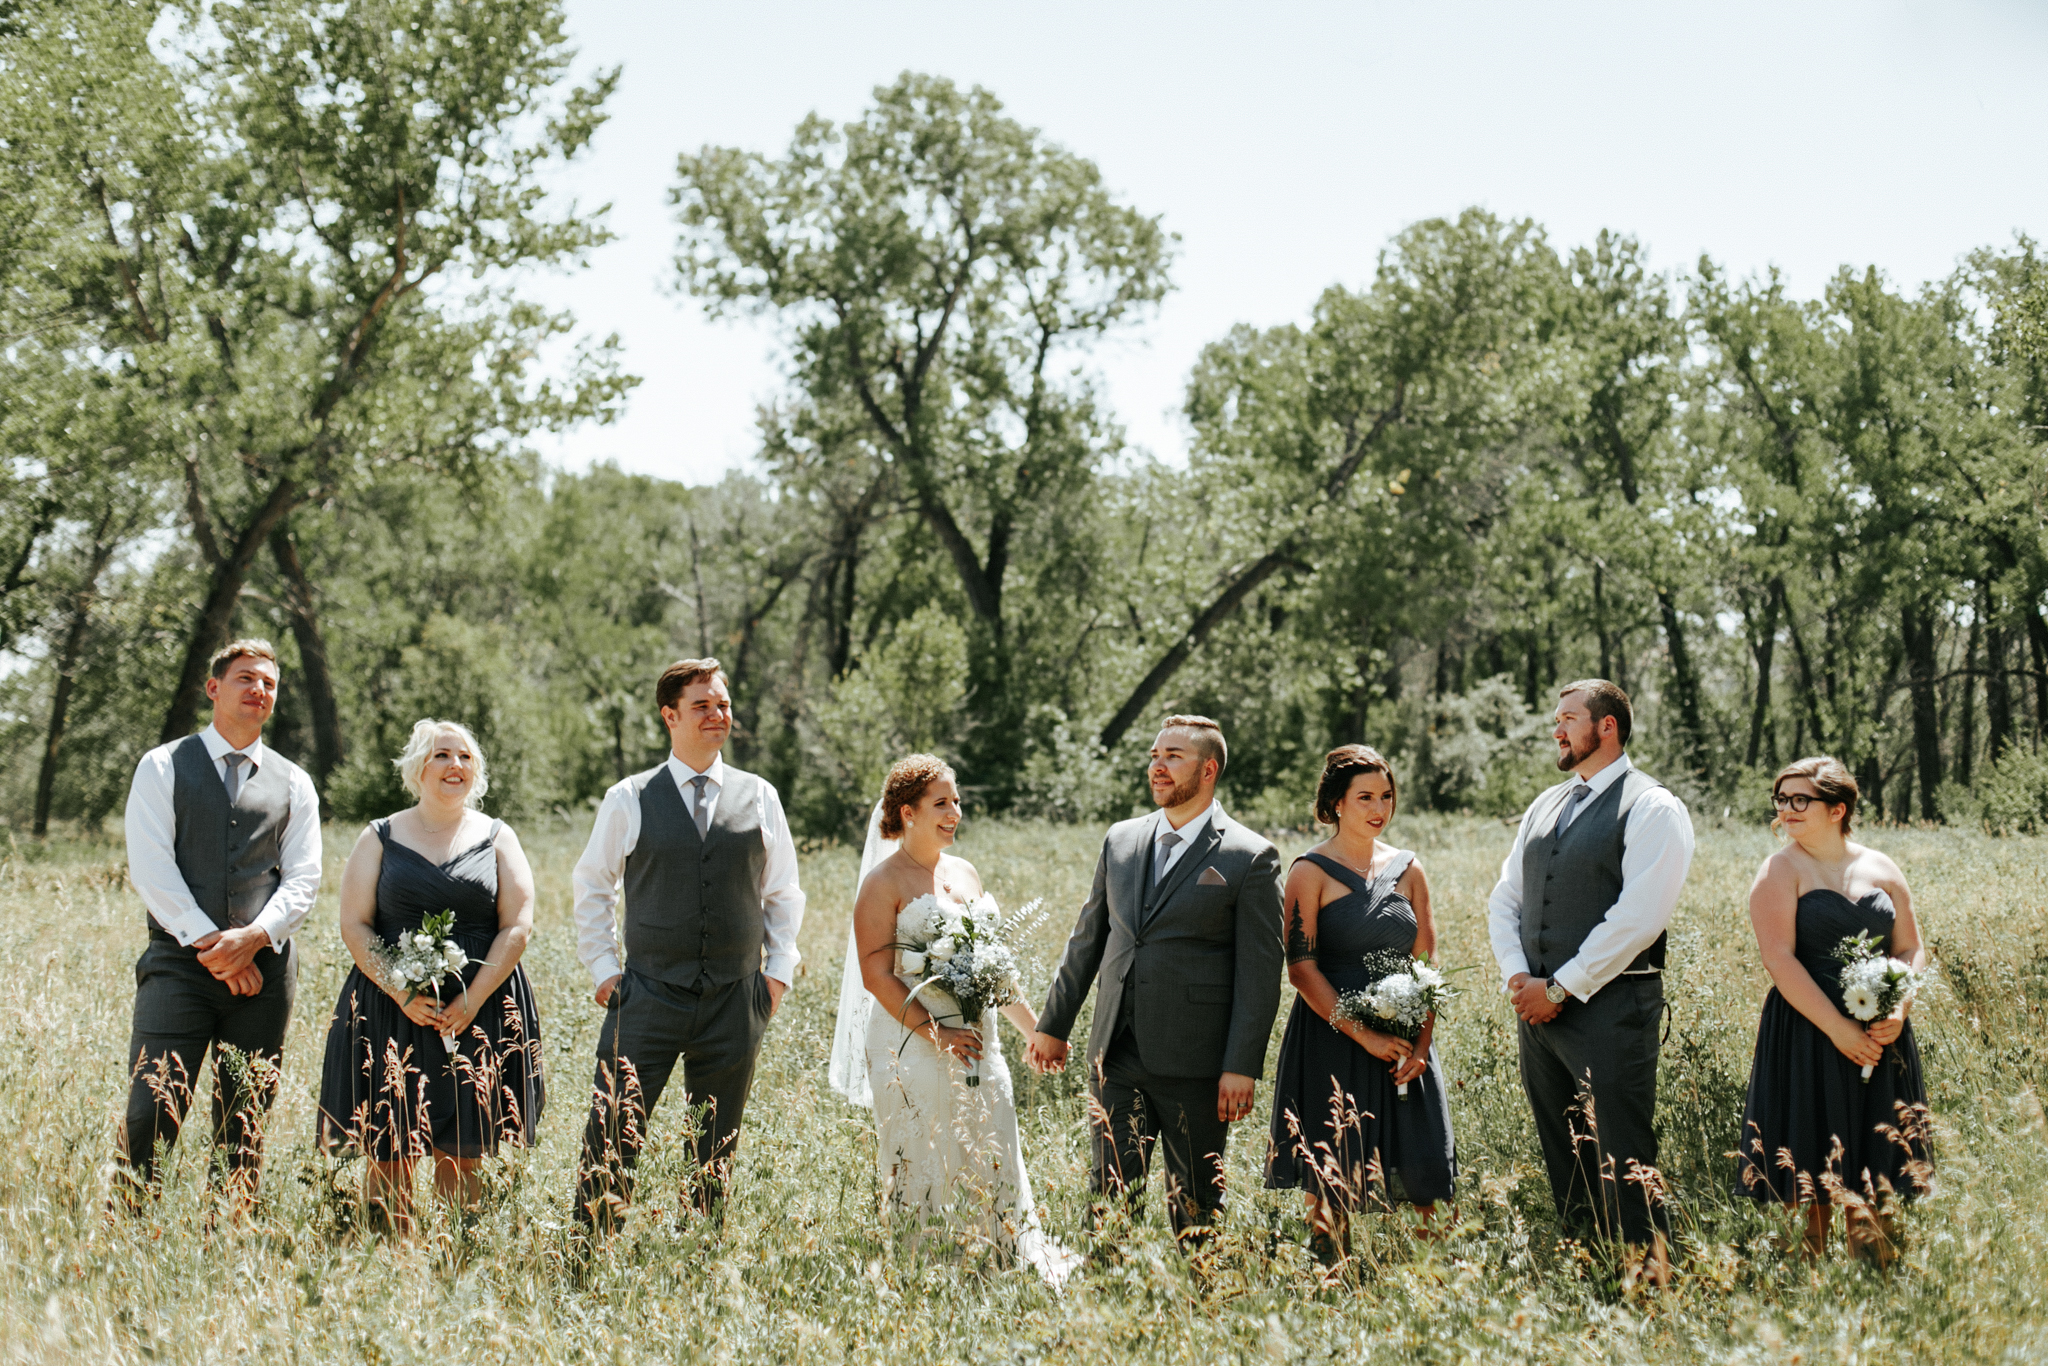 lethbridge-wedding-photographer-love-and-be-loved-photography-trent-danielle-galt-reception-picture-image-photo-99.jpg